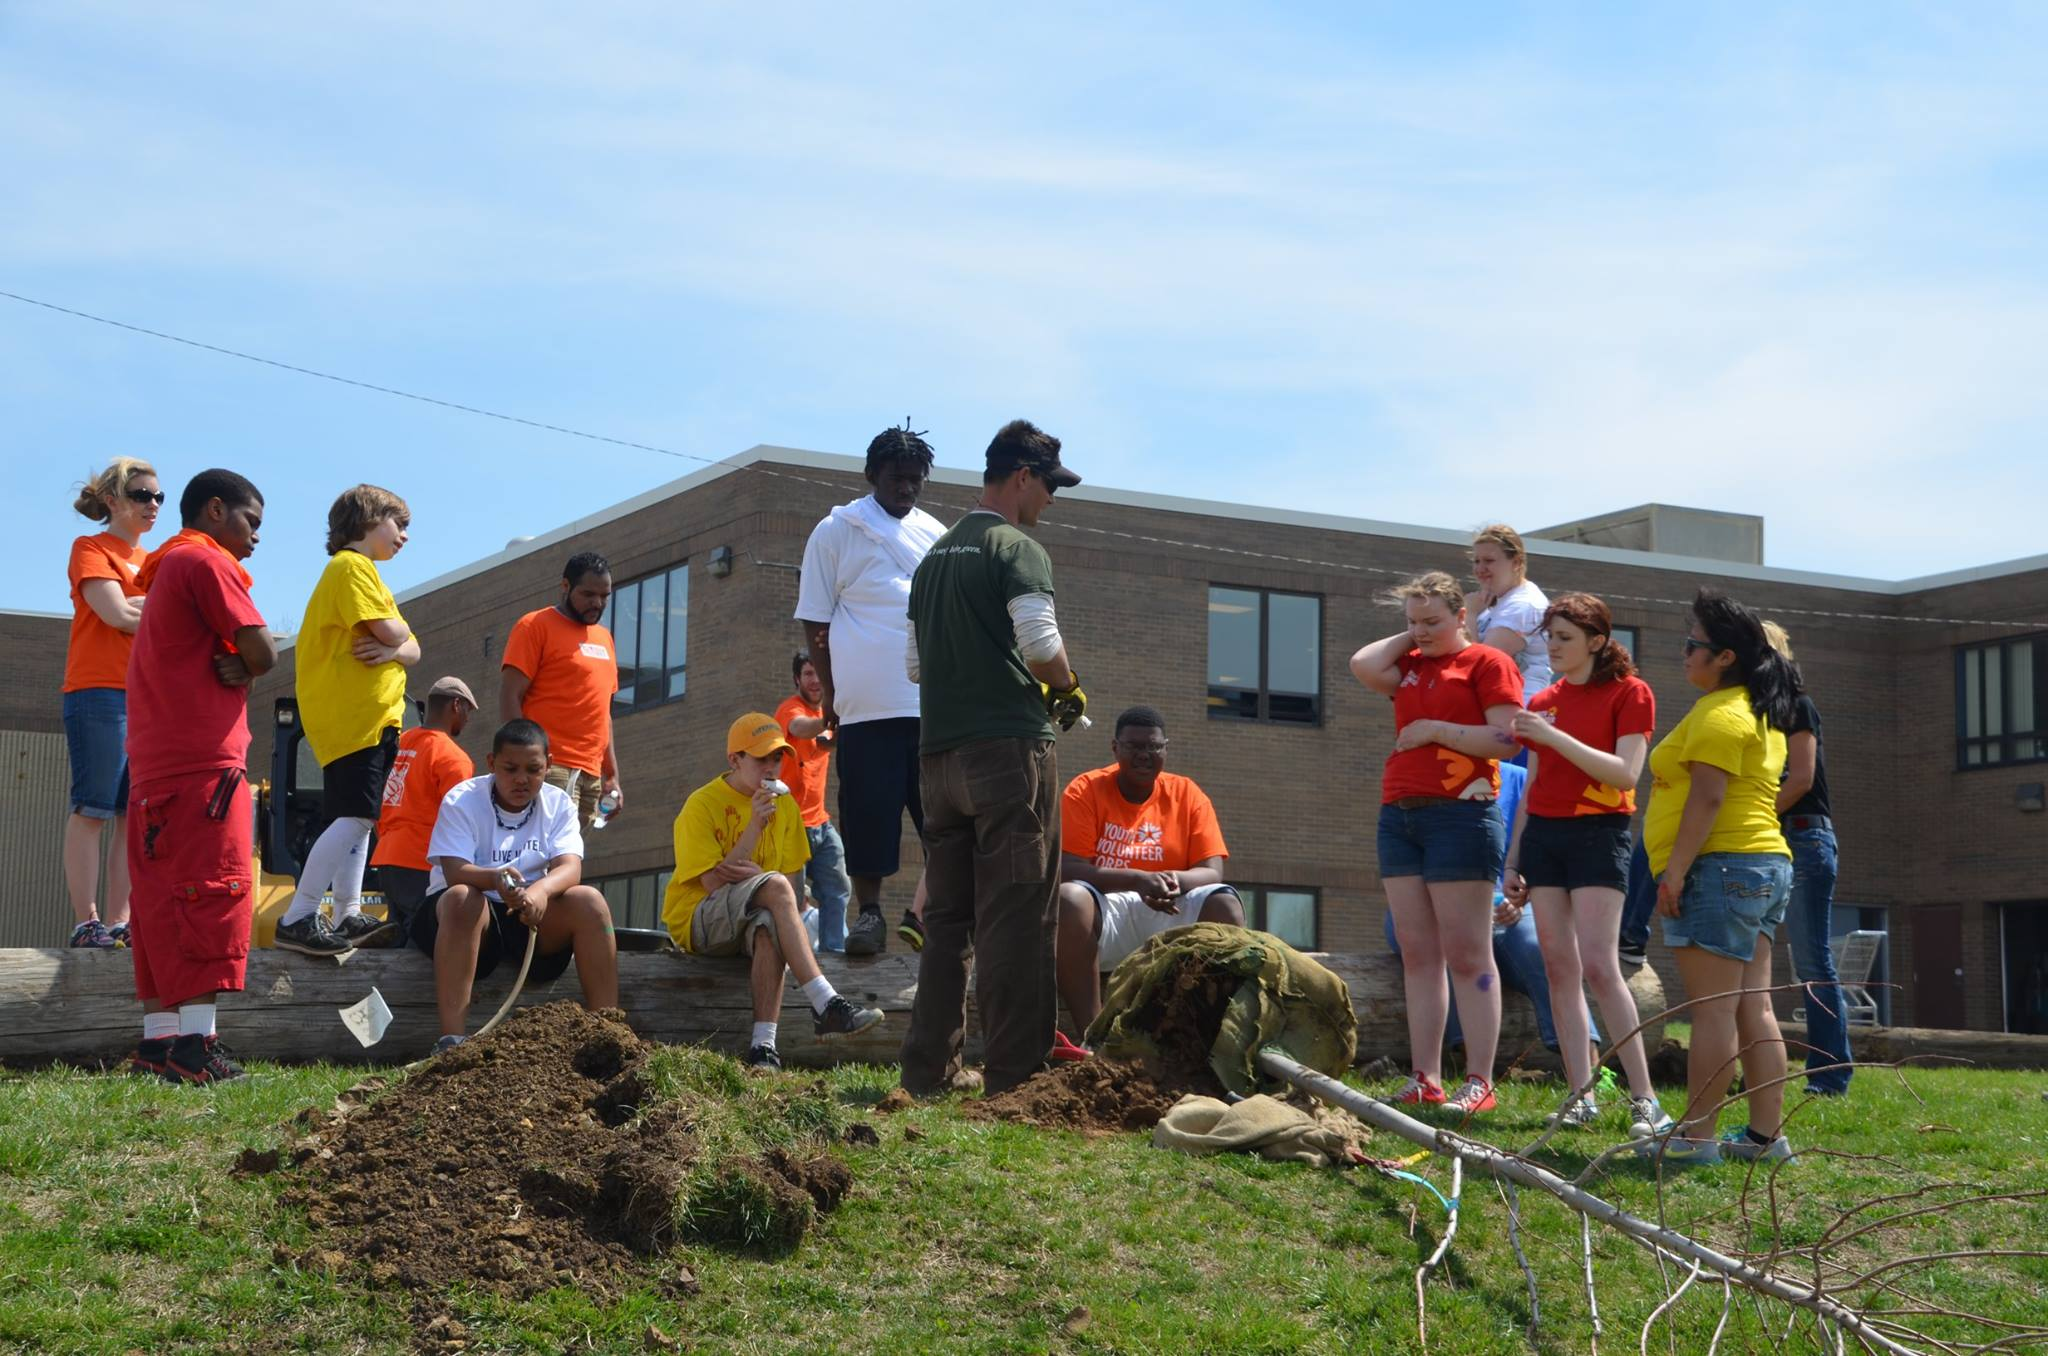 Greater Topeka - GYSD 2014 (4)